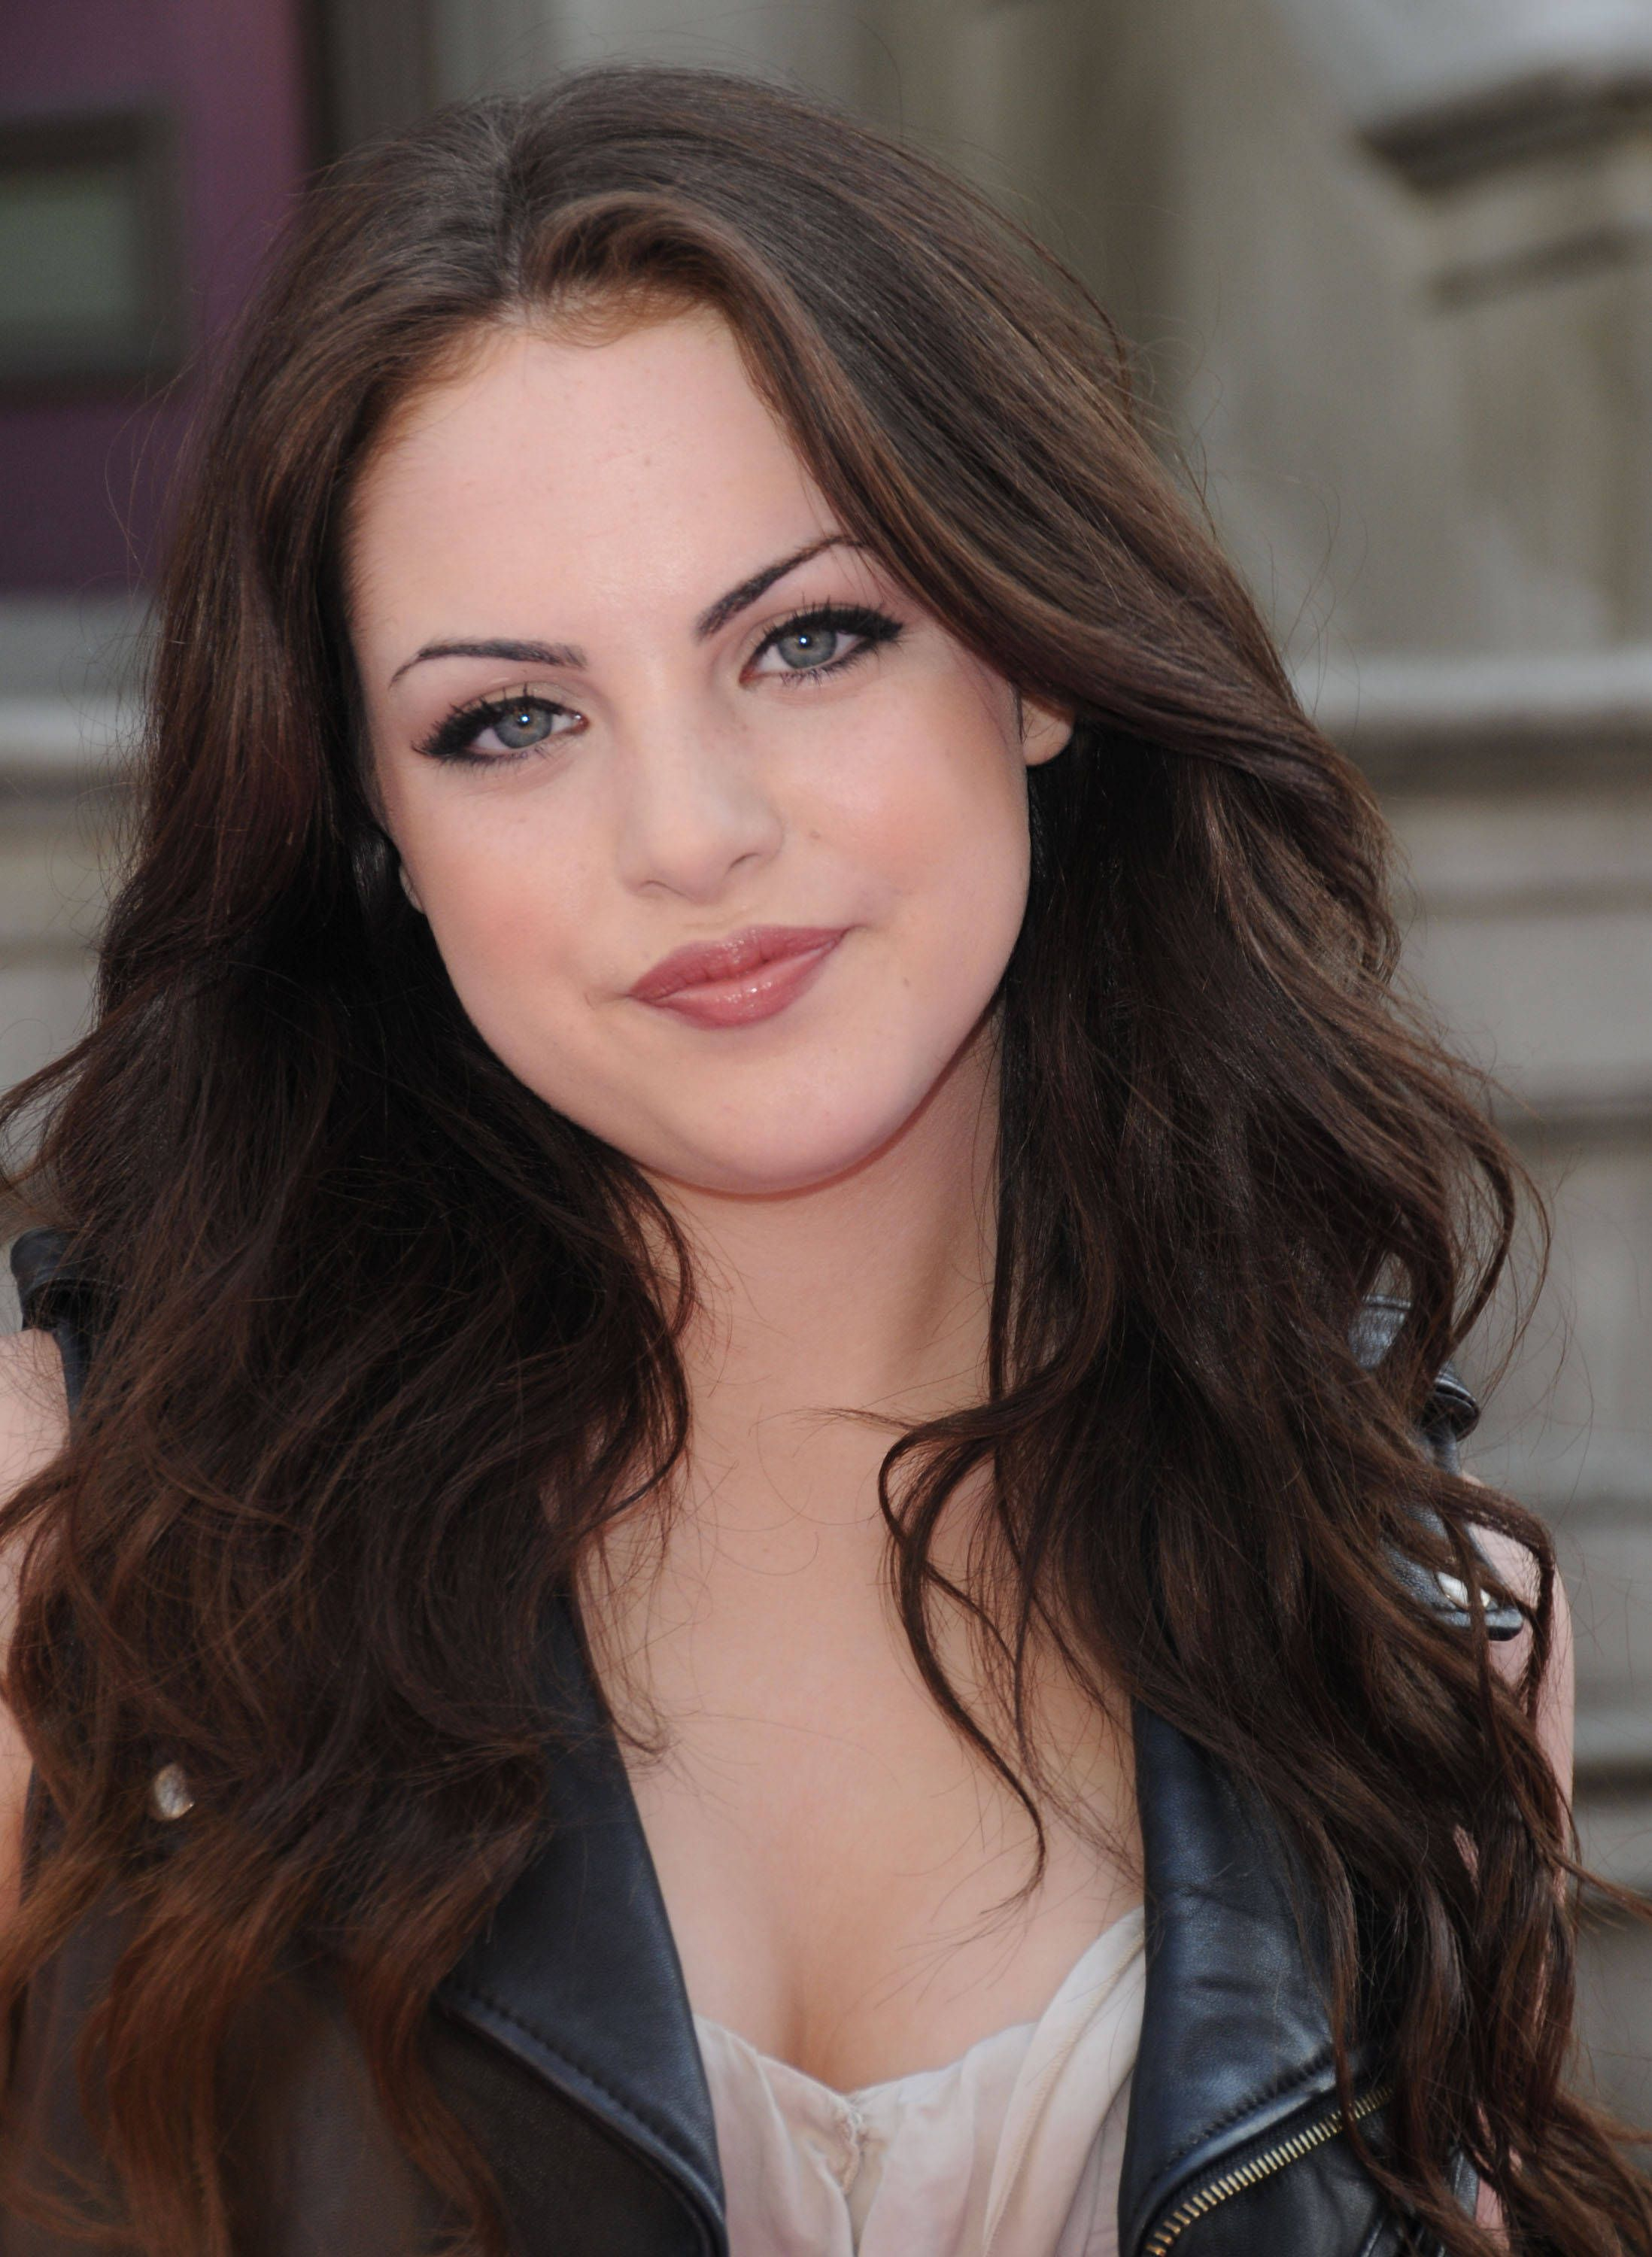 Elizabeth gillies google search is she hot pinterest elizabeth gillies google search voltagebd Choice Image